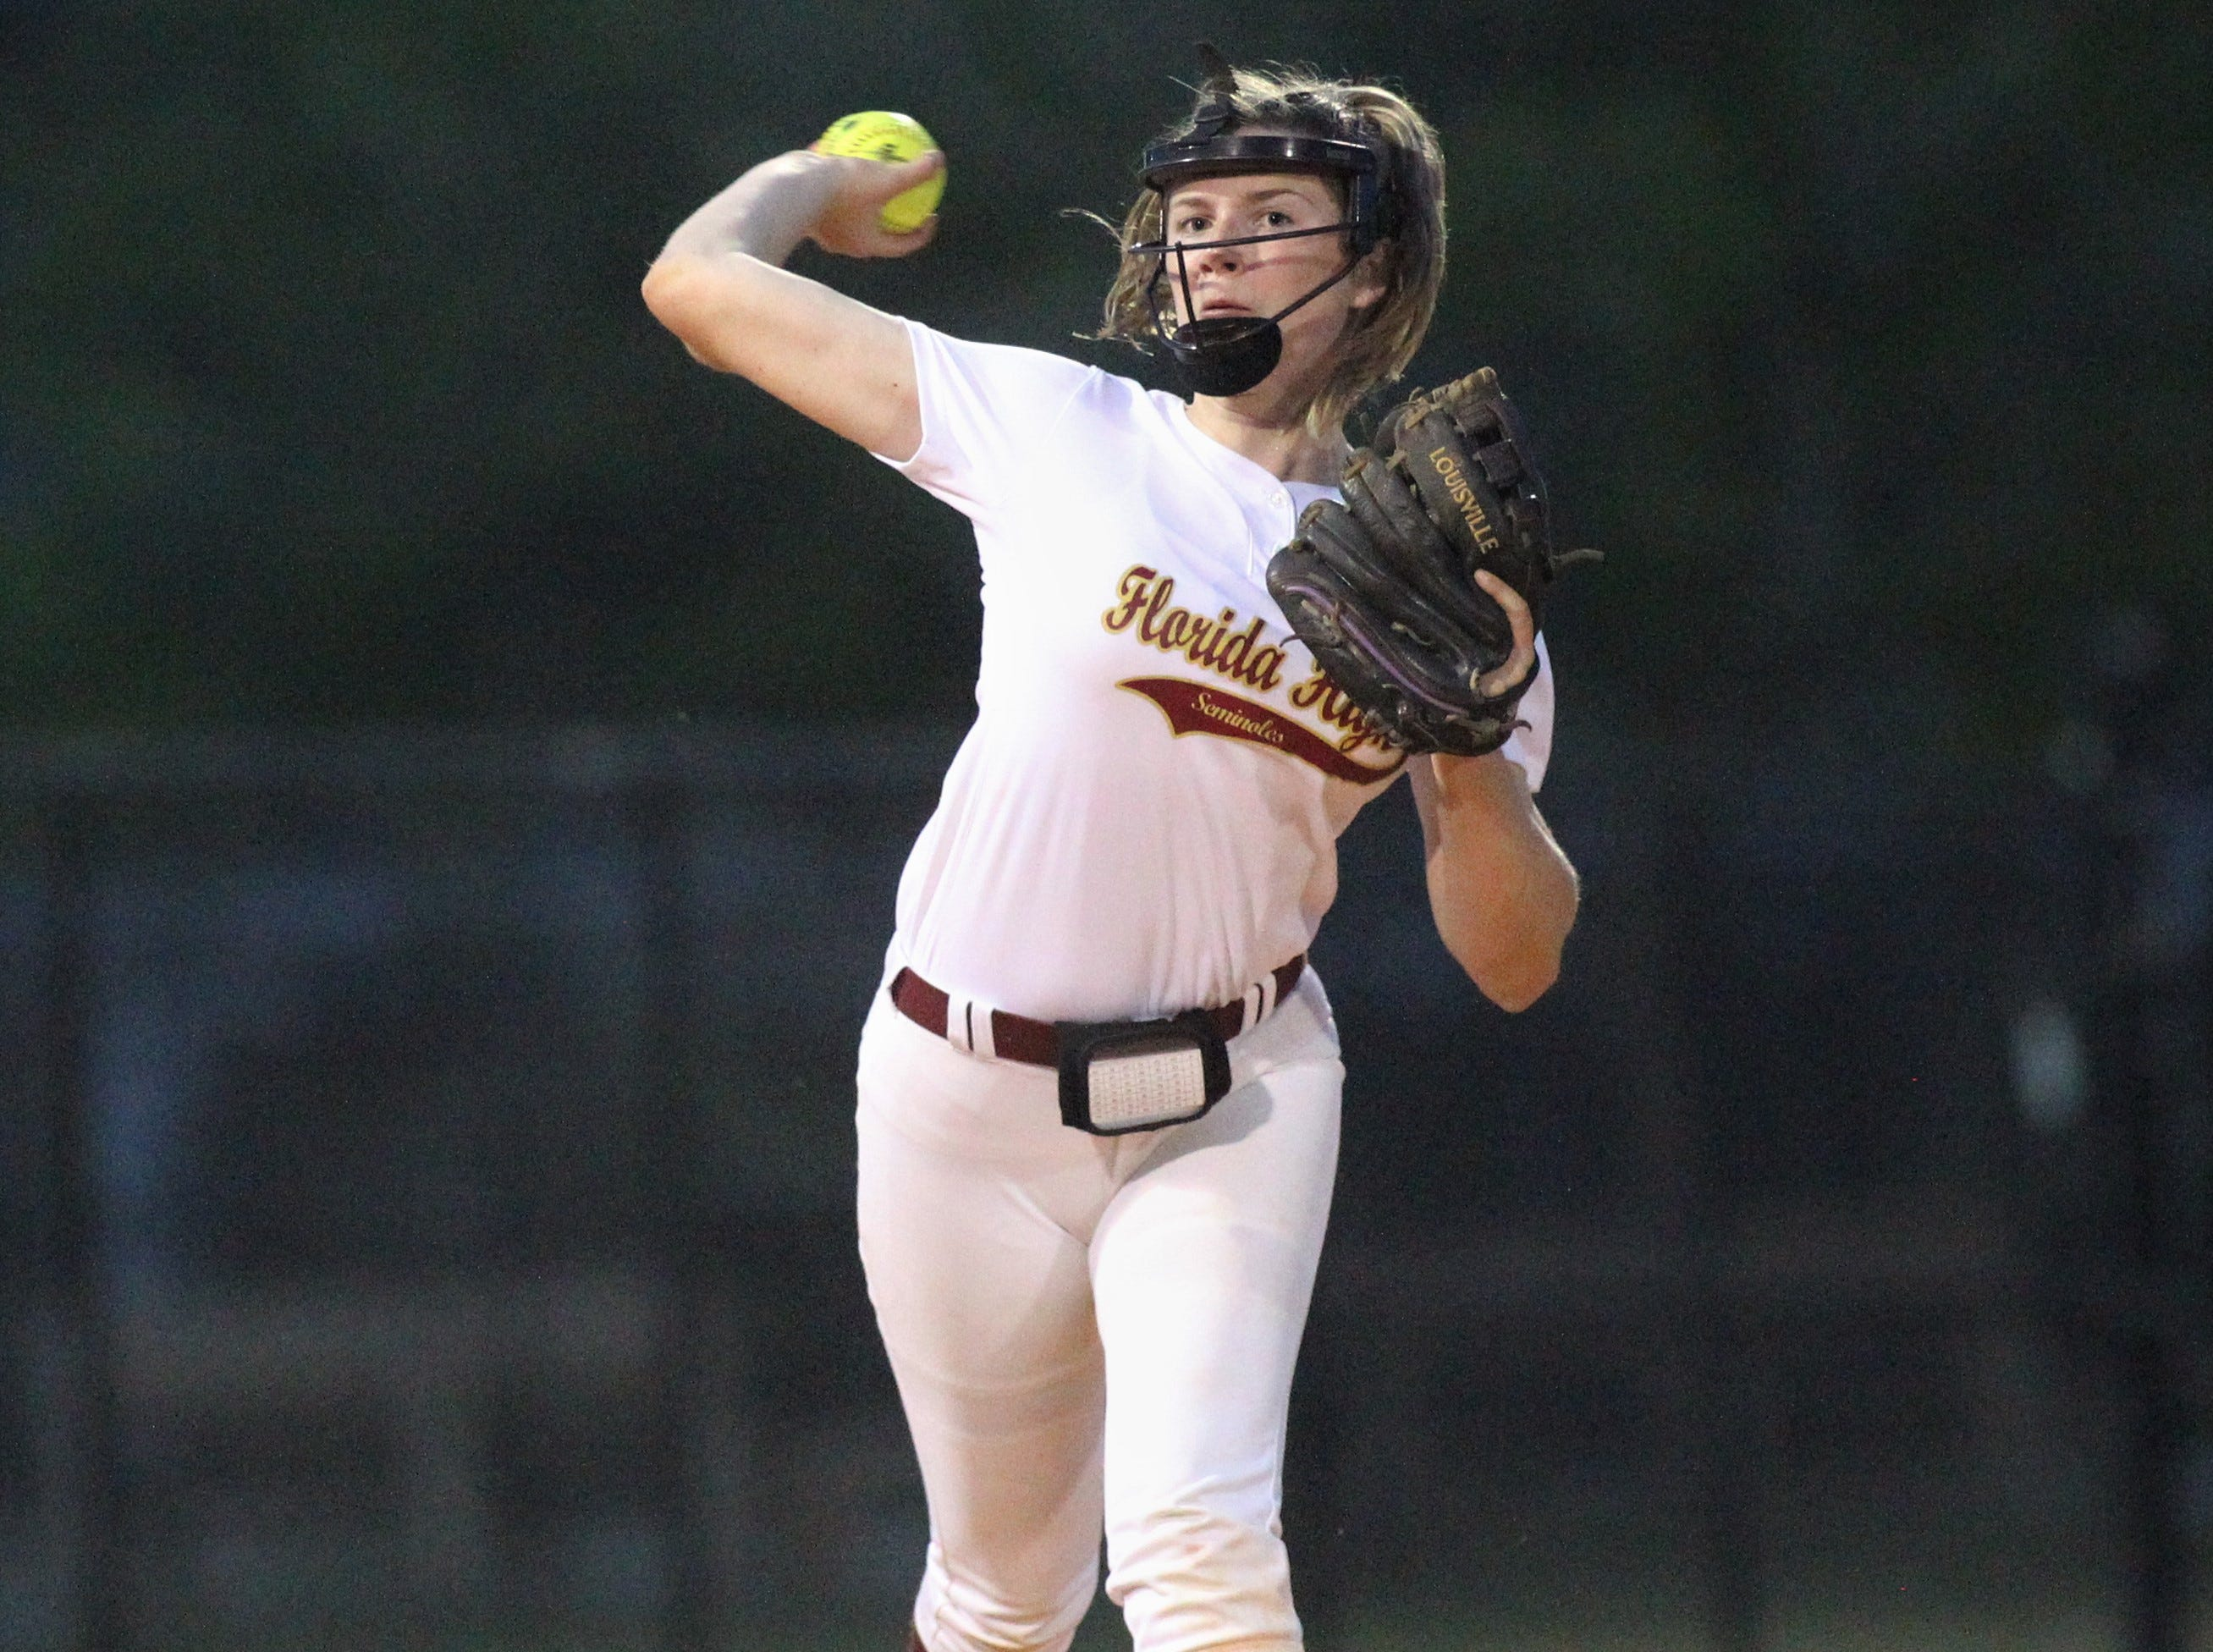 Florida High sophomore shortstop Addisan Langston throws to first for an out as Lincoln's softball team beat Florida High 7-3 on Thursday, April 4, 2019.